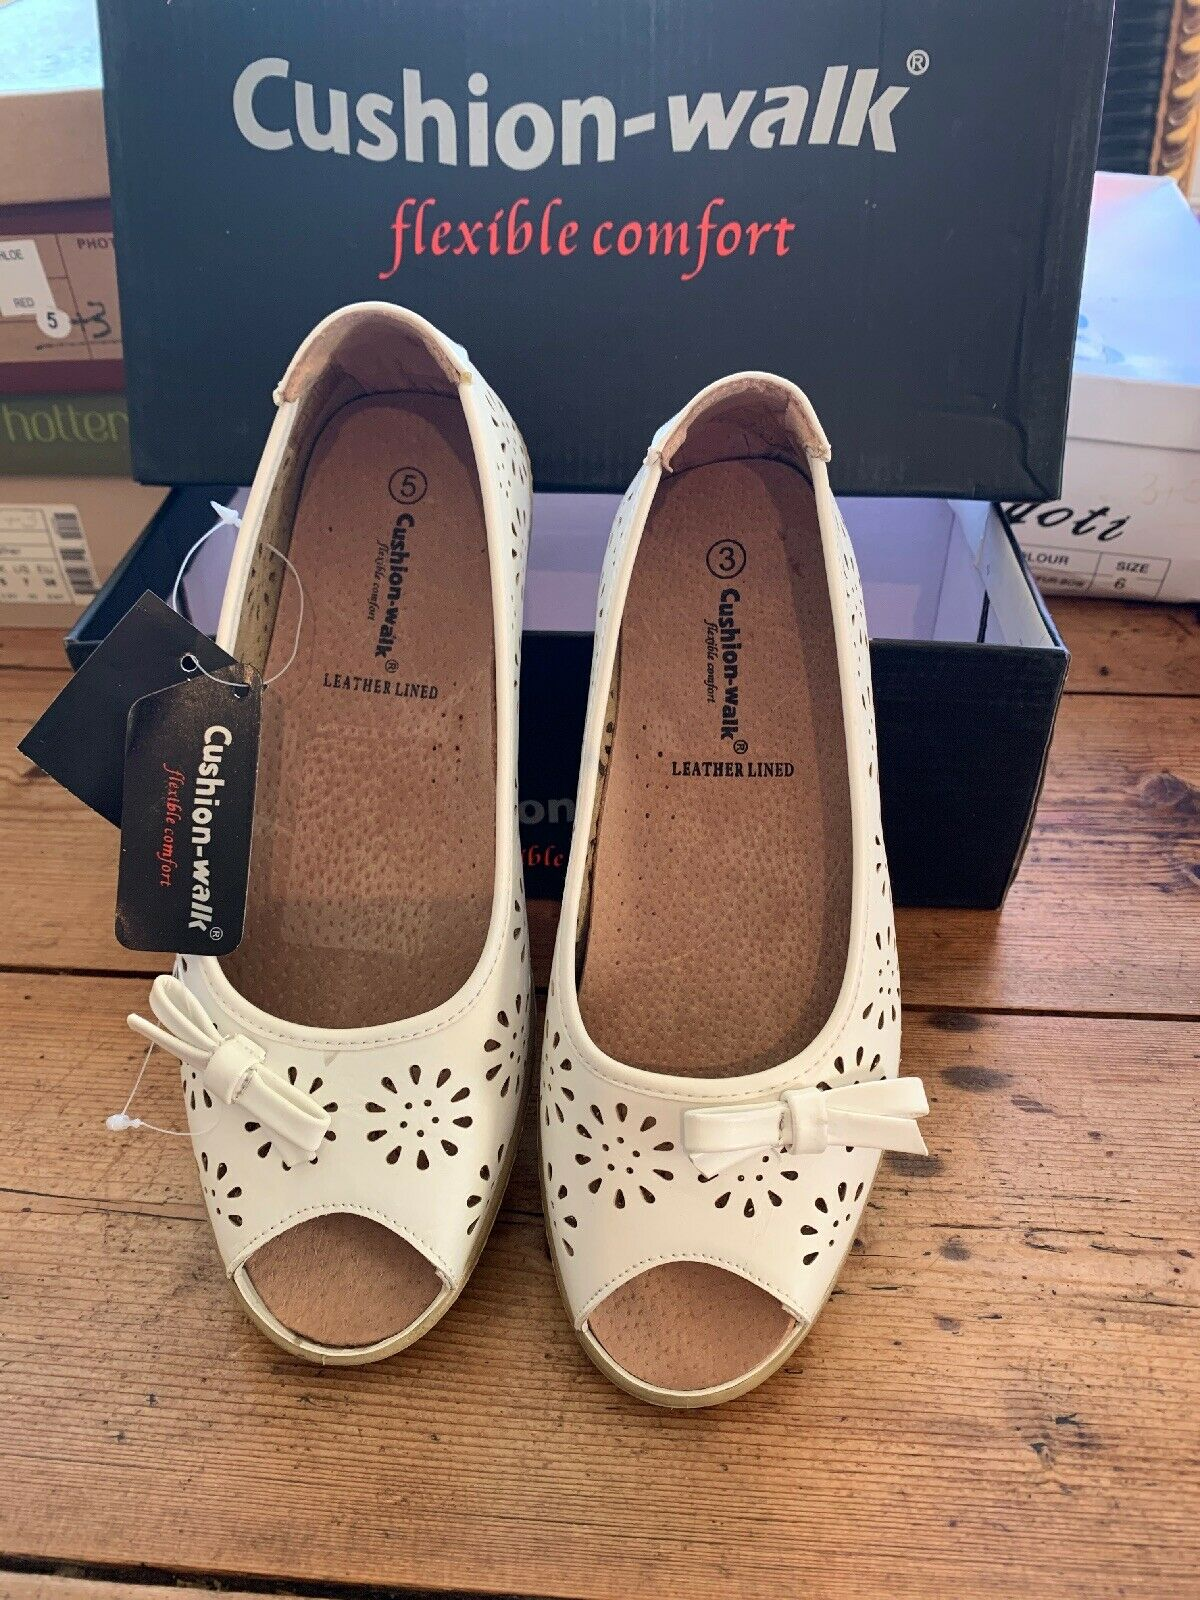 Ladies Cushion Walk Shoes Size 5 for